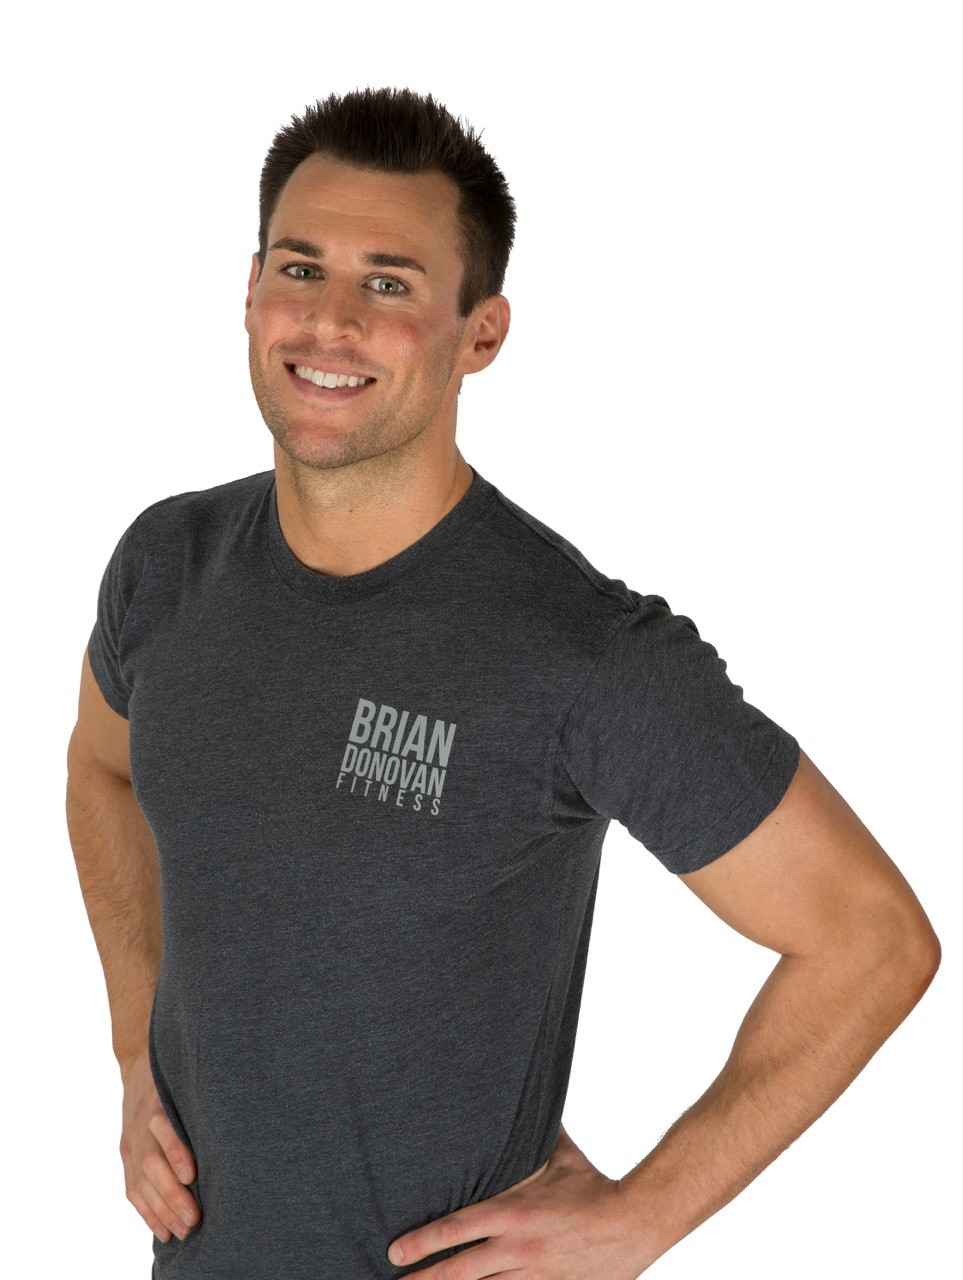 Personal Trainer Chicago, Illinois - Brian Donovan